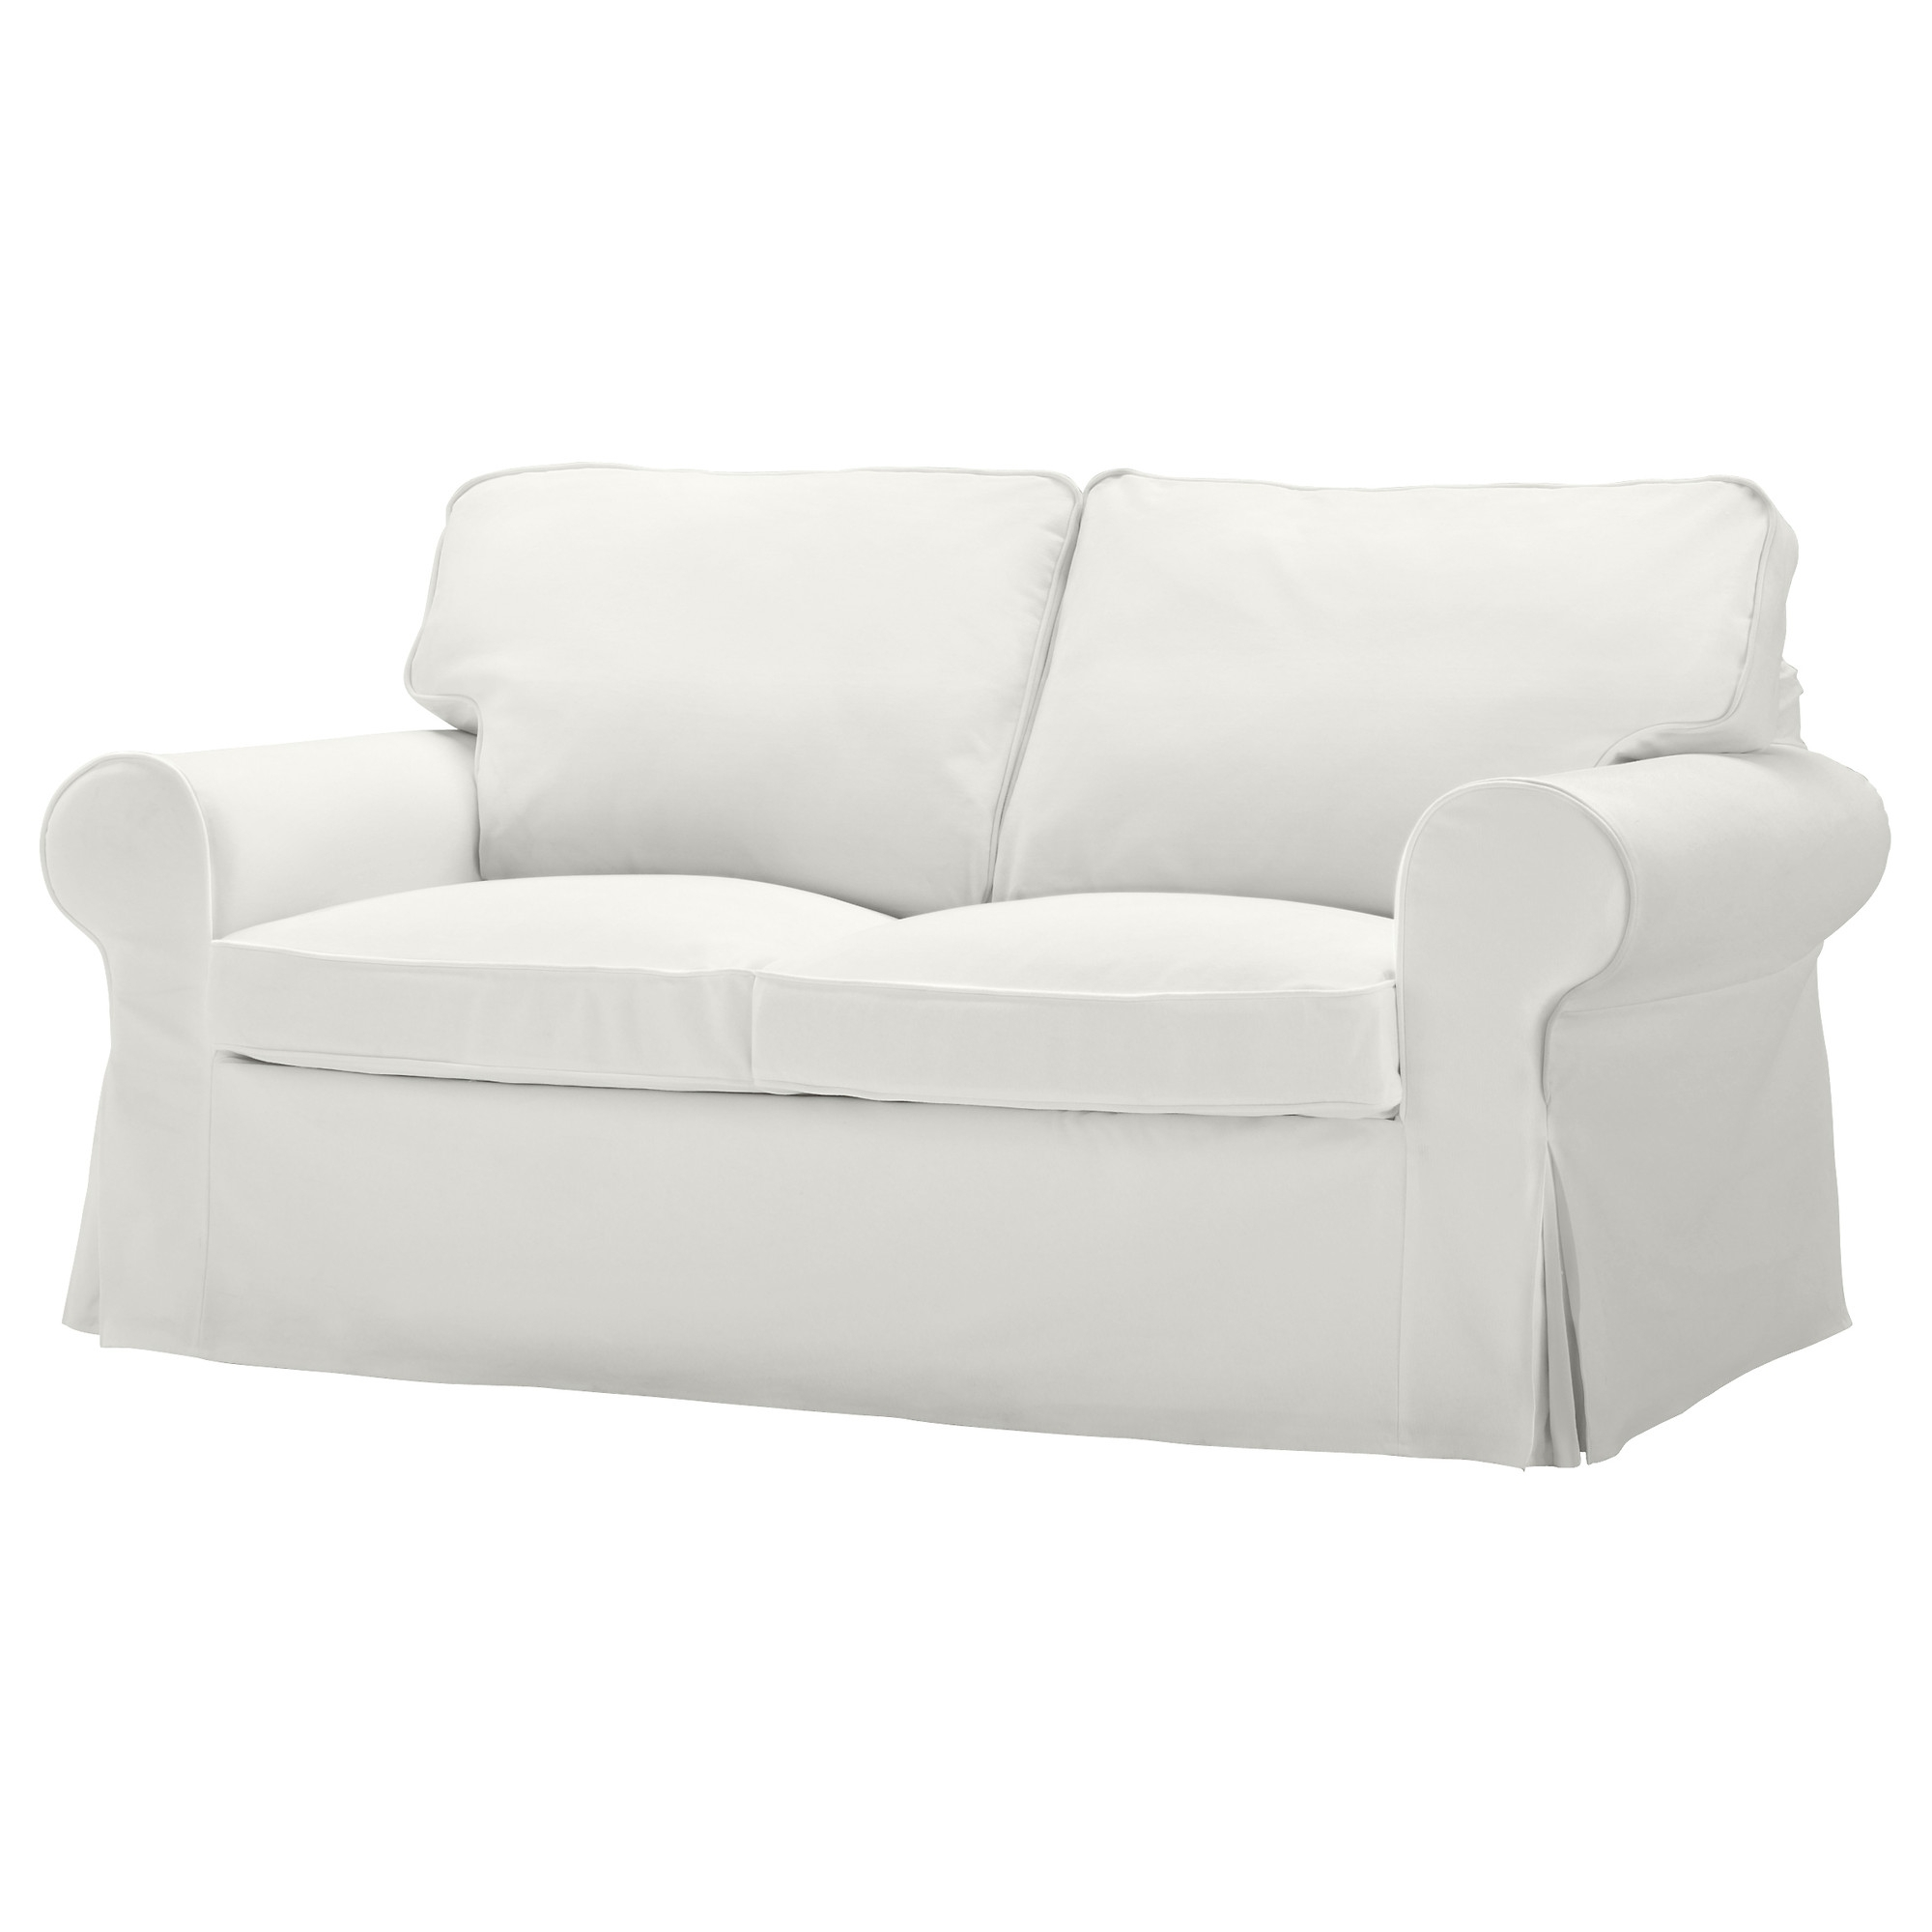 Ektorp Two-Seat Sofa Blekinge White | My Style | Pinterest | Love with Taron 3 Piece Power Reclining Sectionals With Right Facing Console Loveseat (Image 7 of 30)